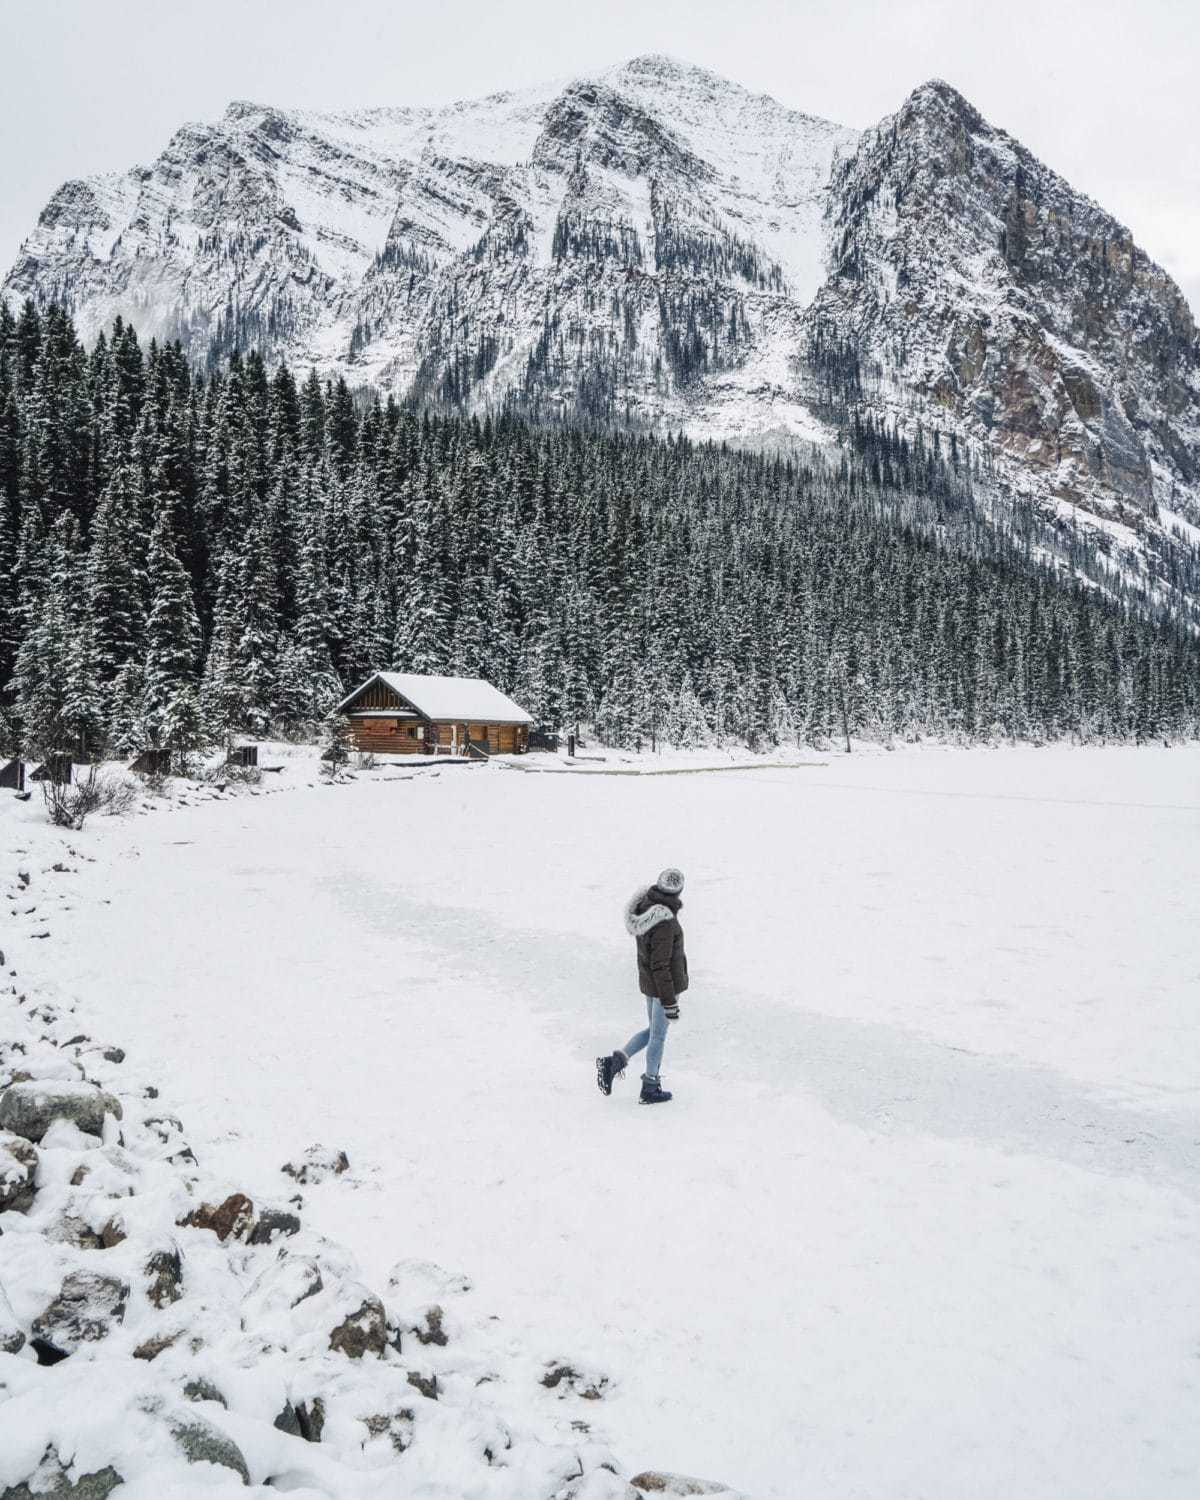 Banff Winter Photography Guide: 10 Spots You Won't Want to Miss